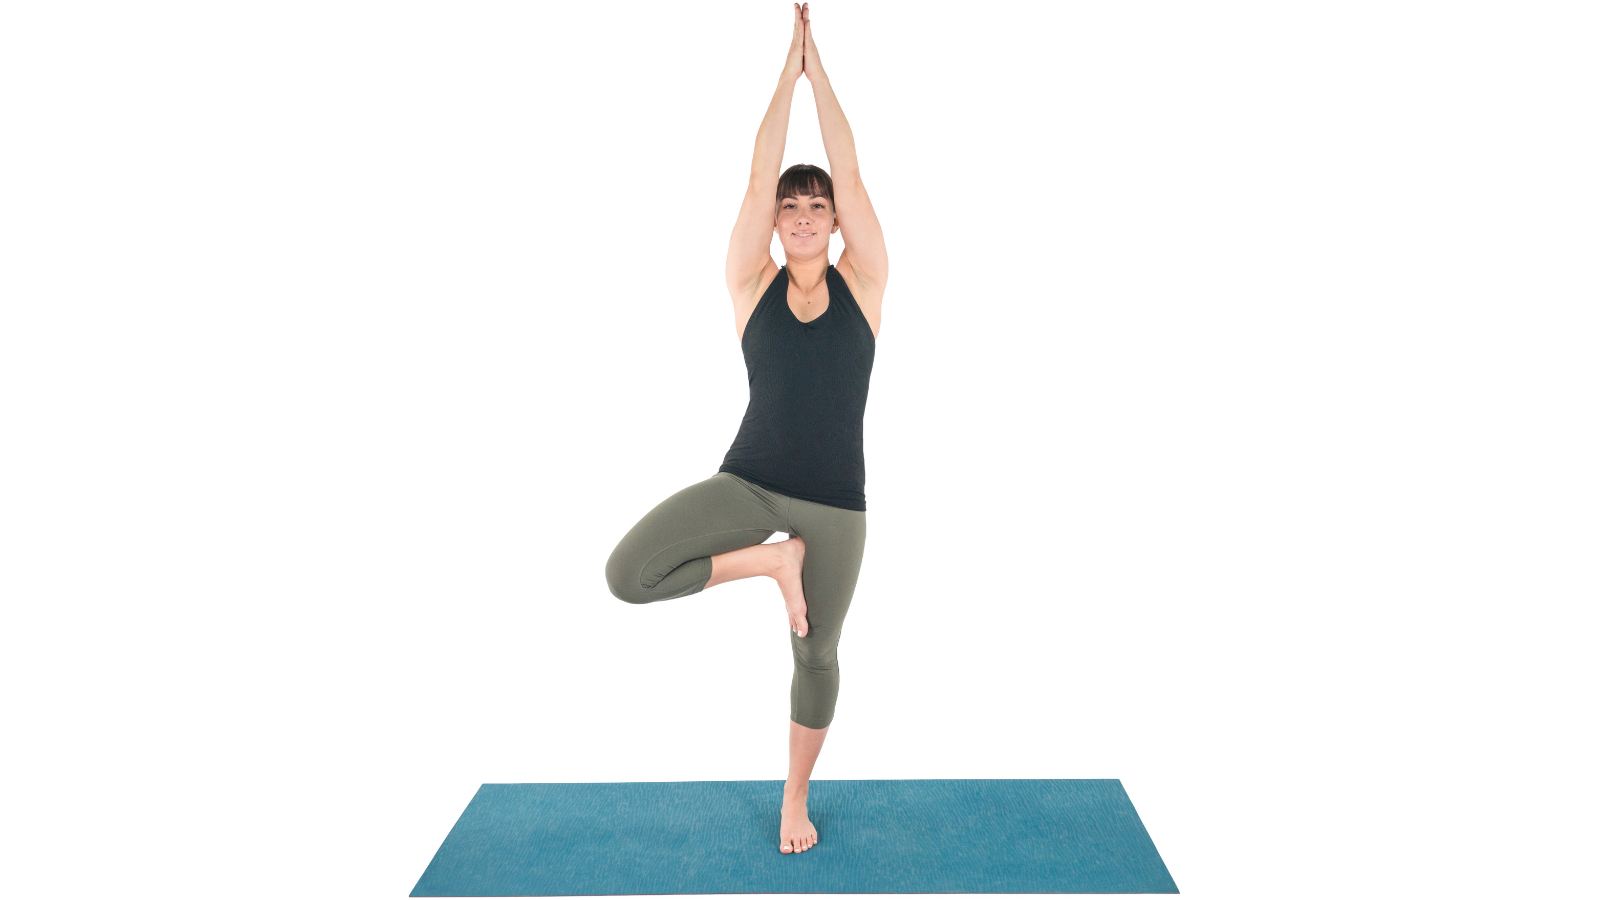 Tree Pose or Vrksasana is a grounding balance pose in yoga